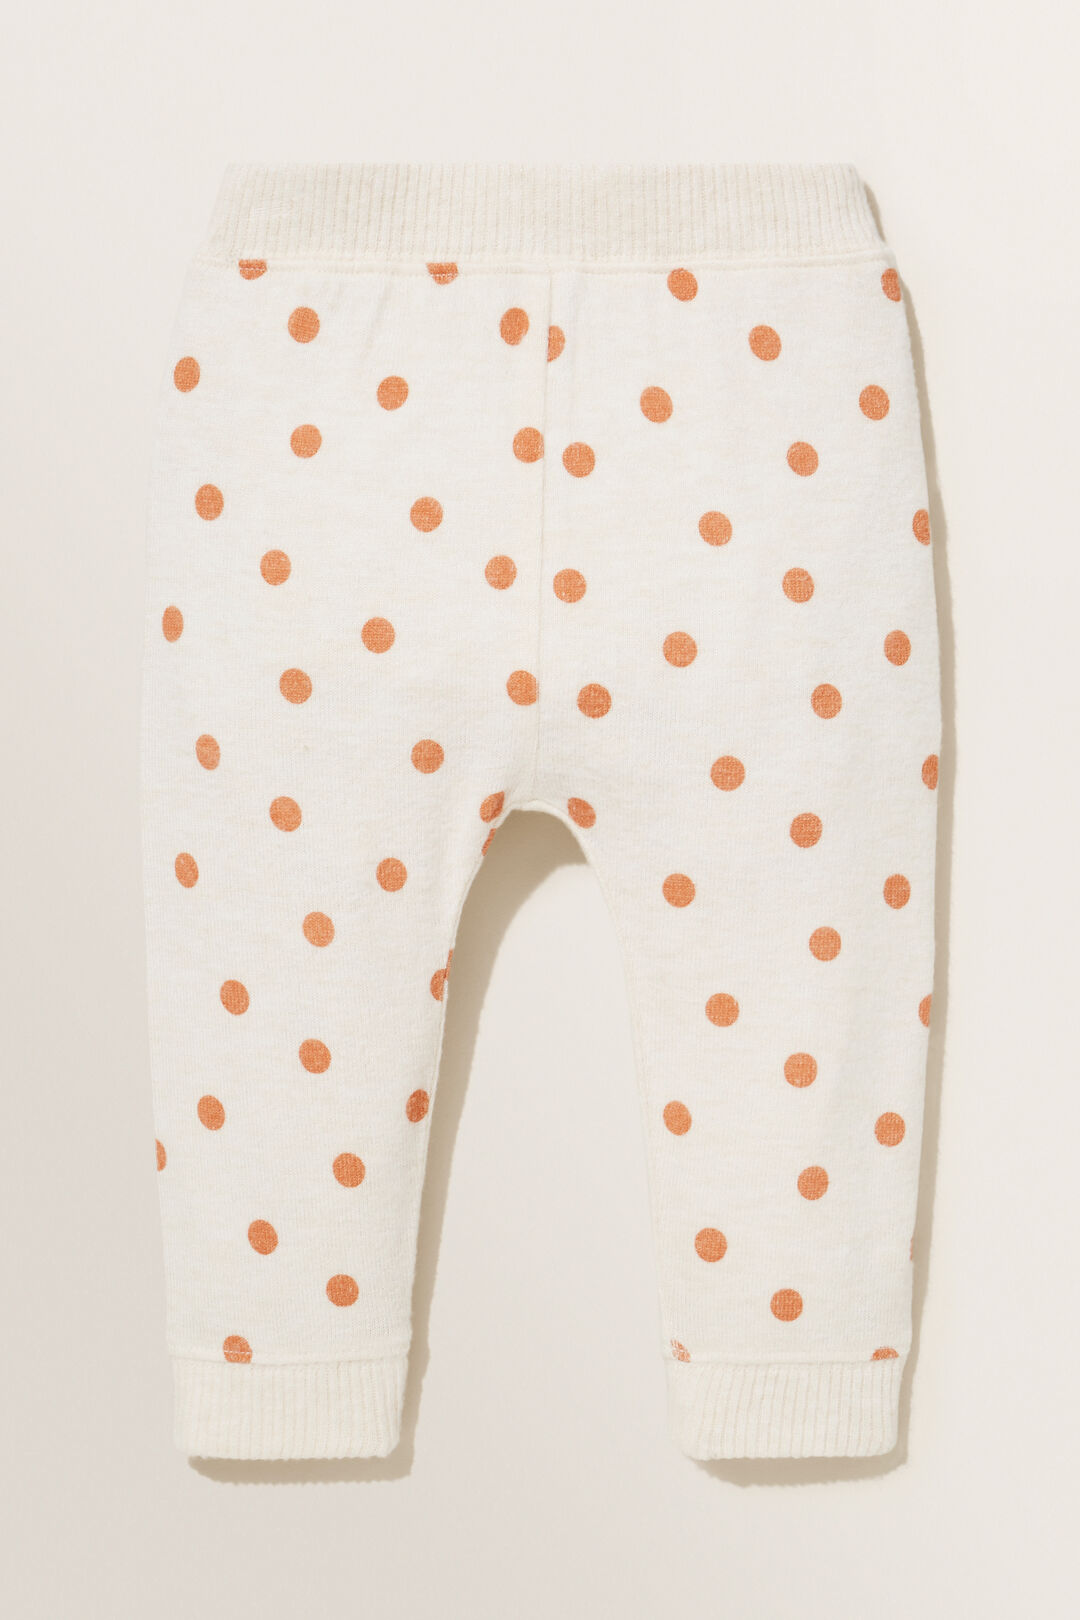 Spotty Brushed Terry  Trackpant  OAT MARLE  hi-res